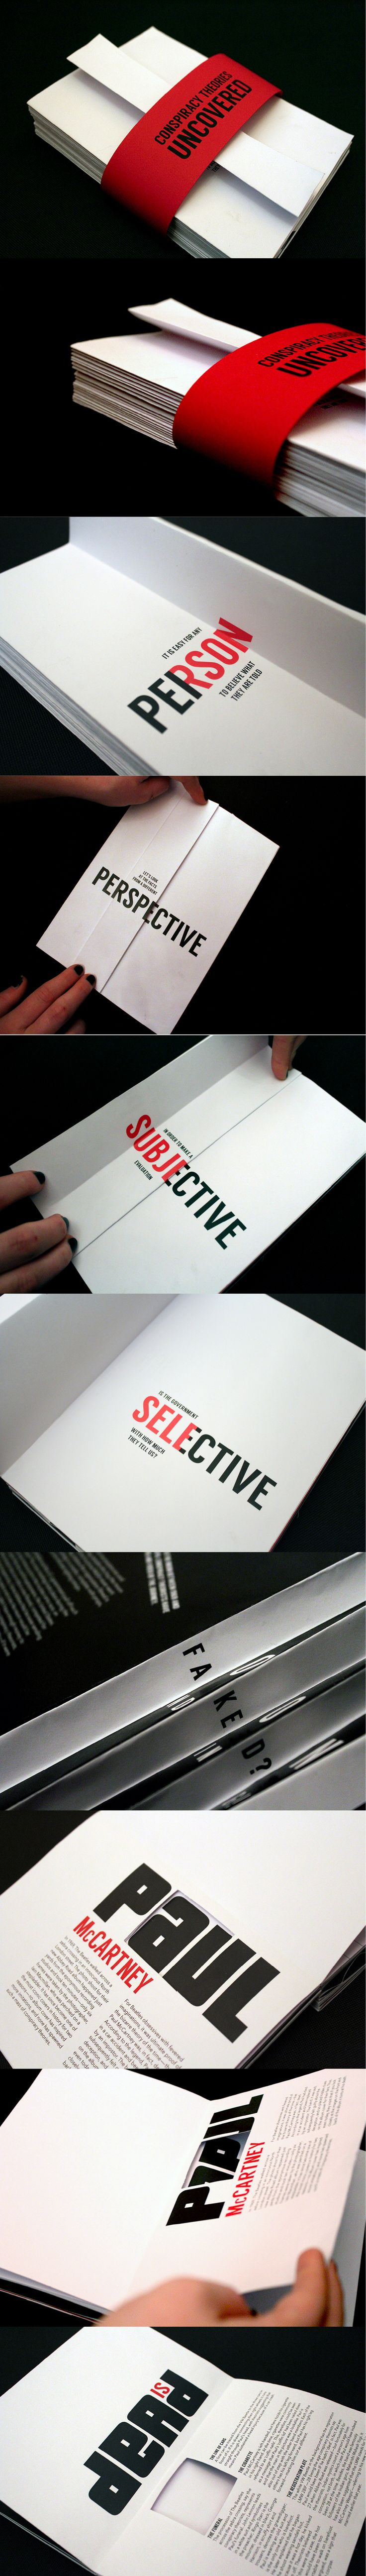 Hand-bound typographical booklet highlighting famous conspiracy theories and the facts to support them. The belly band is lifted to uncover the folded front which unfolds to reveal a number of quizzical sentences to introduce the contents. Die-cuts and folds are used throughout to hide and reveal words and letters, as if they were hidden from us before, much like the nature of the conspiracy theory.